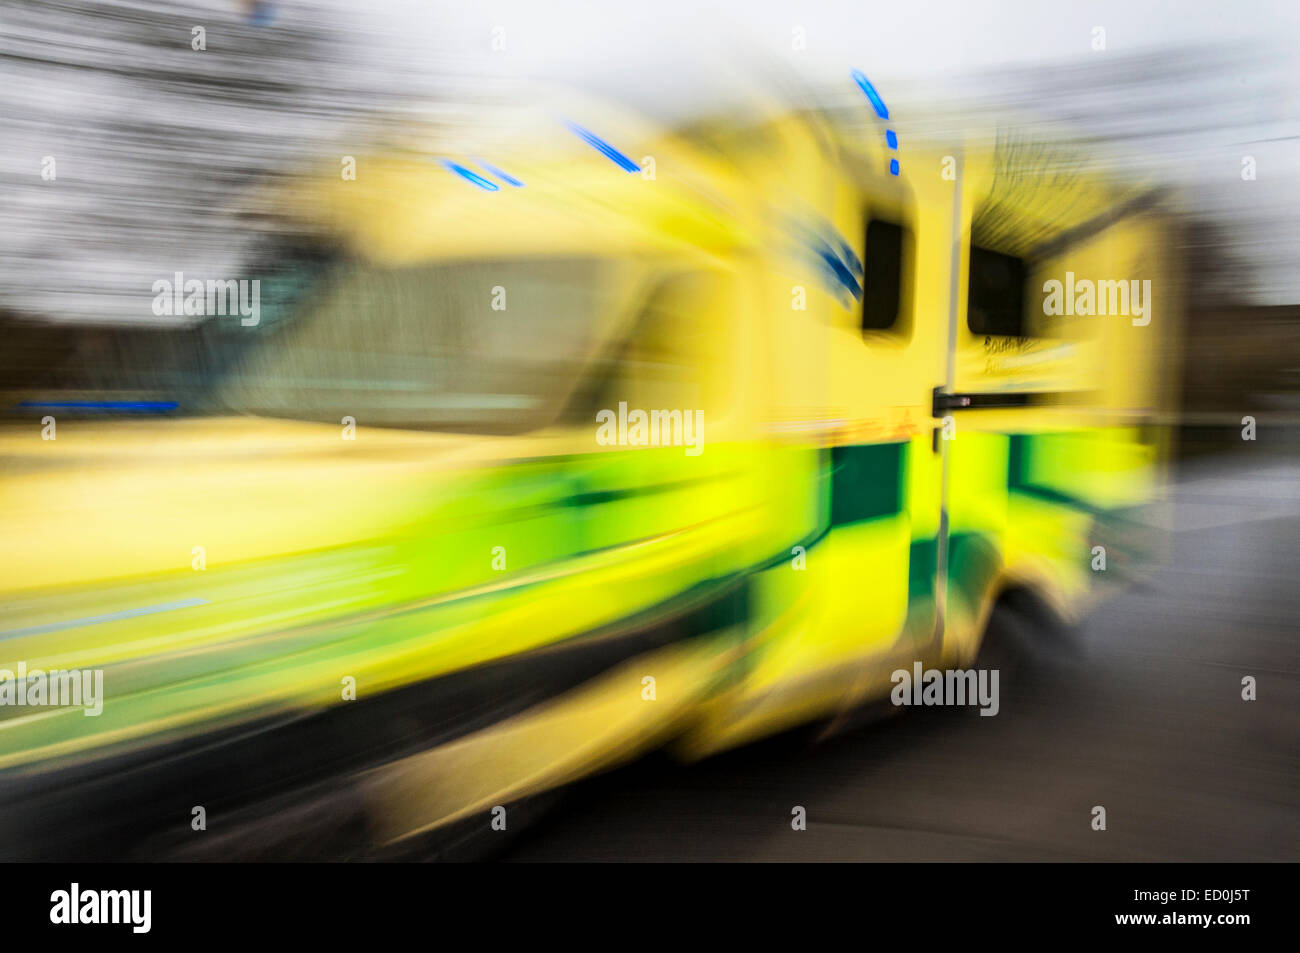 Fast moving ambulance responding to an emergency image showing speed blur. Stock Photo